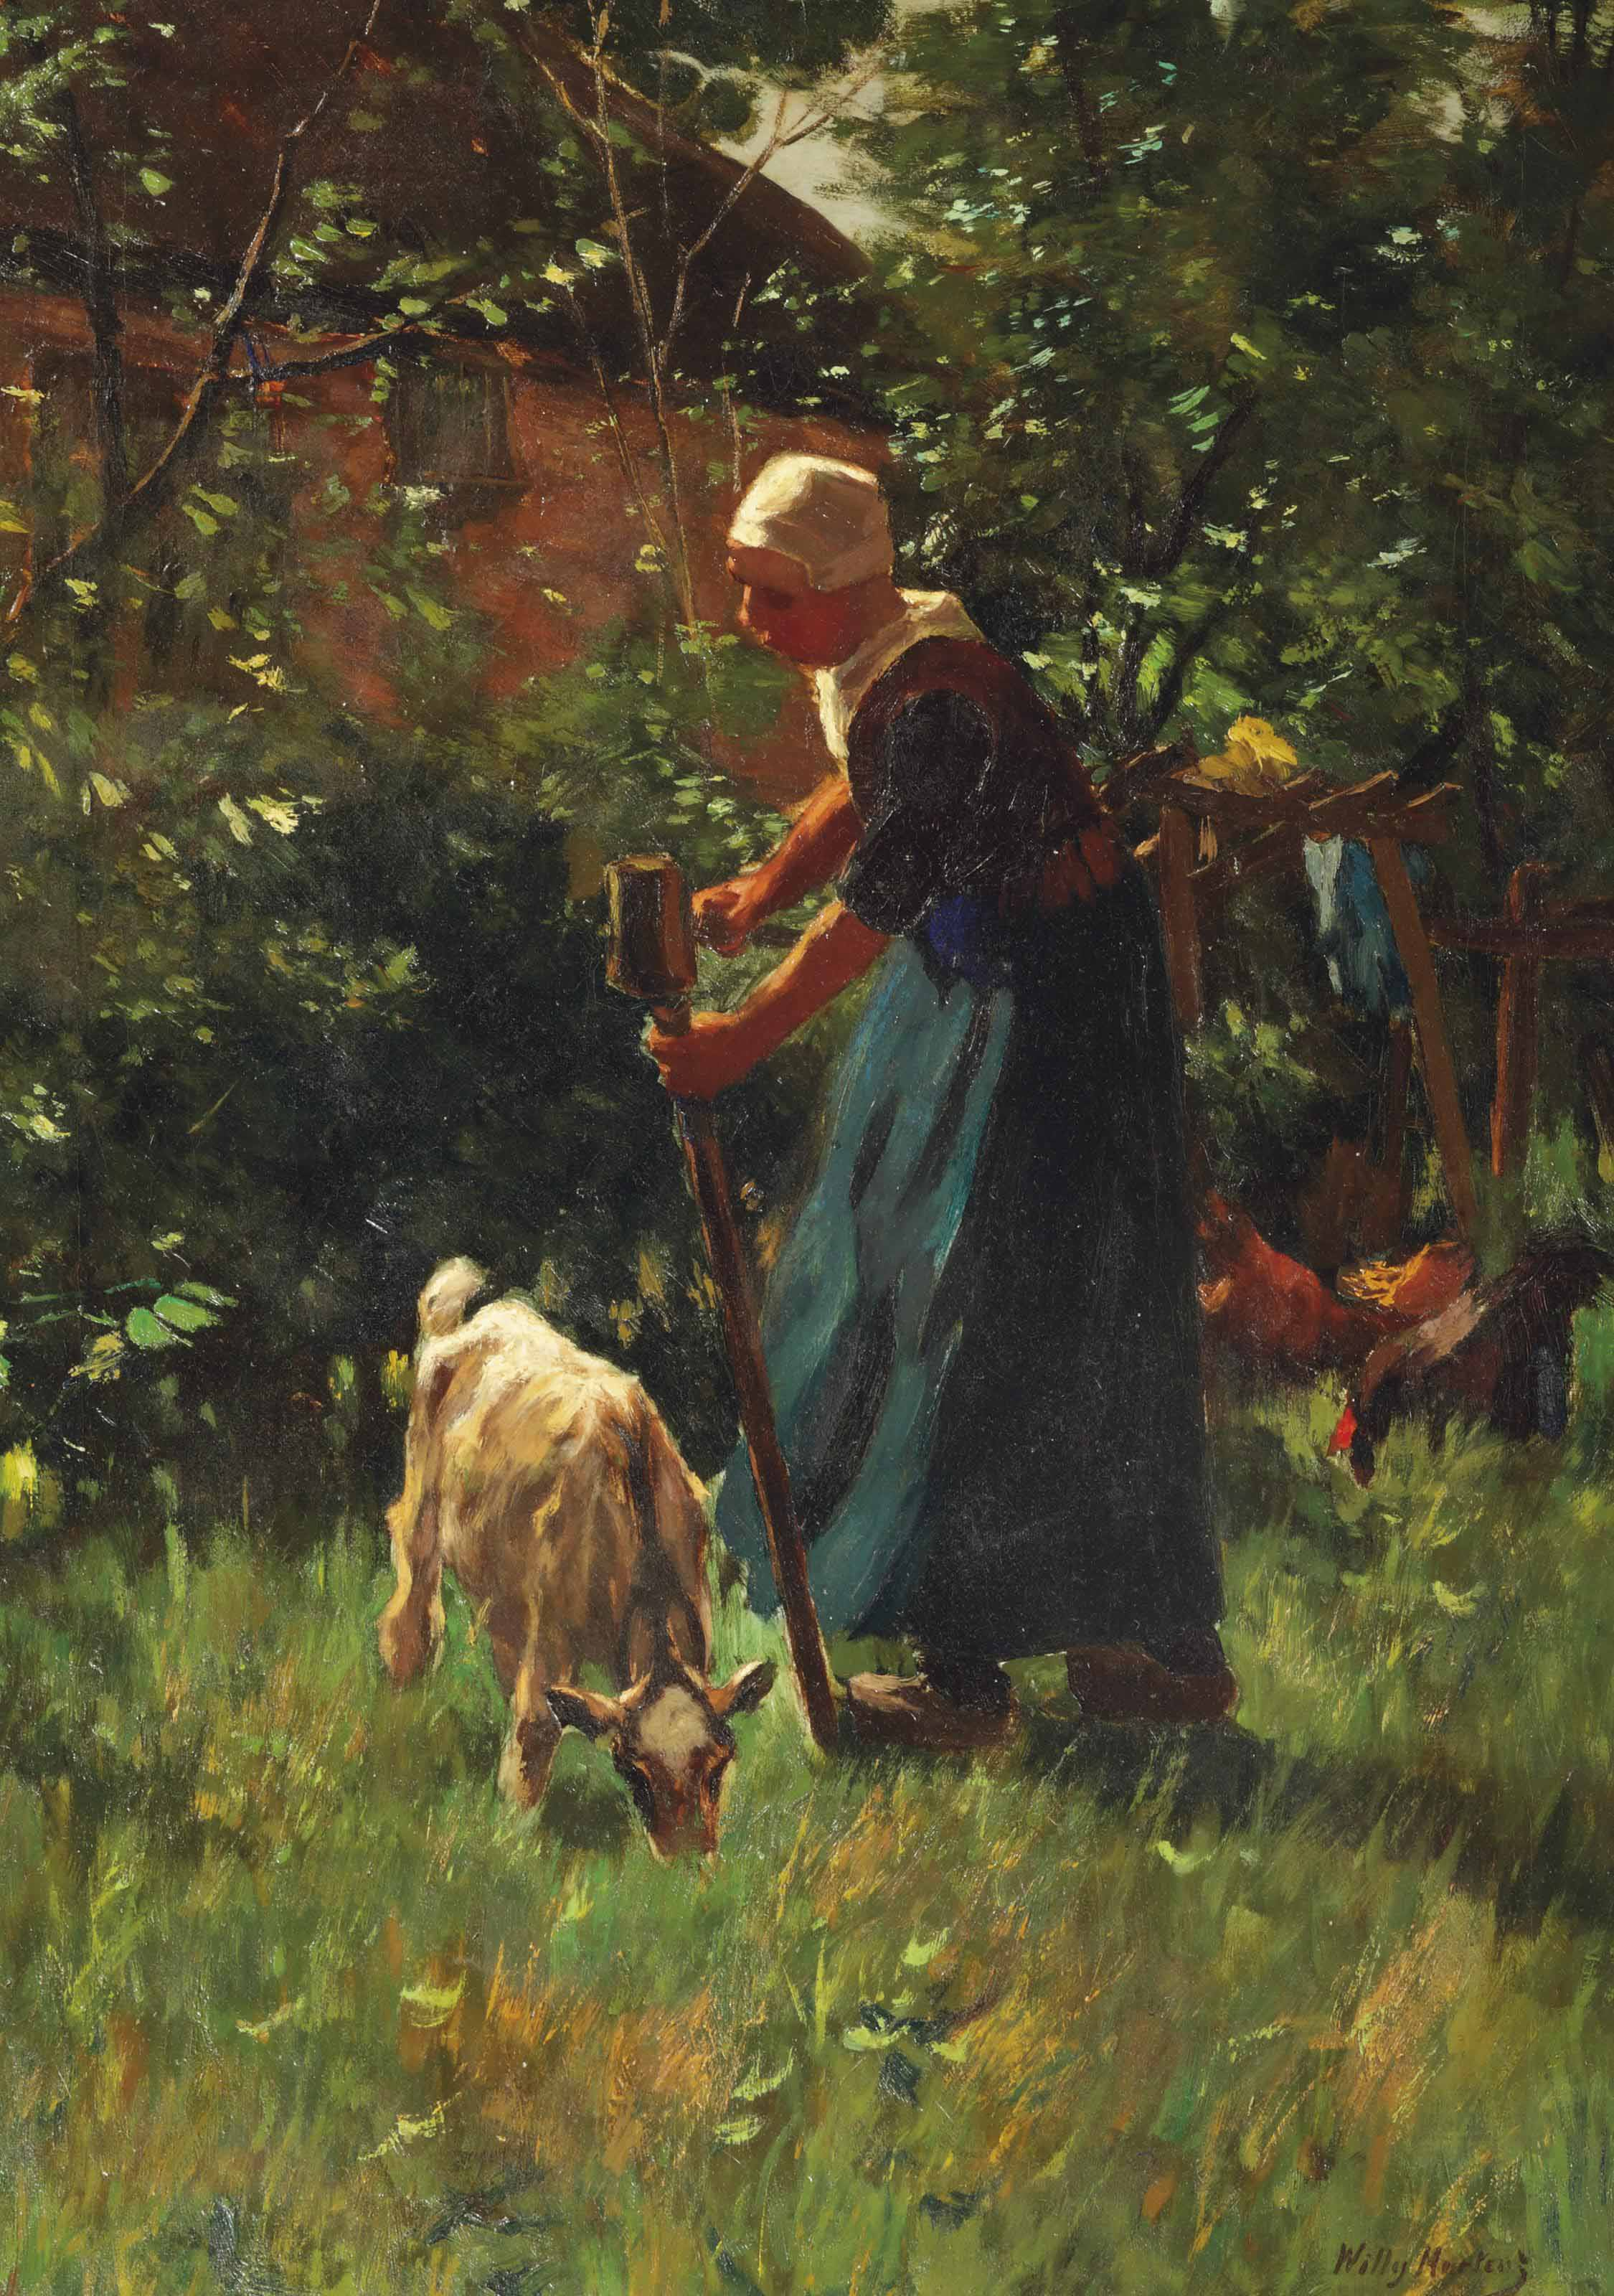 Willy Martens (1856-1927